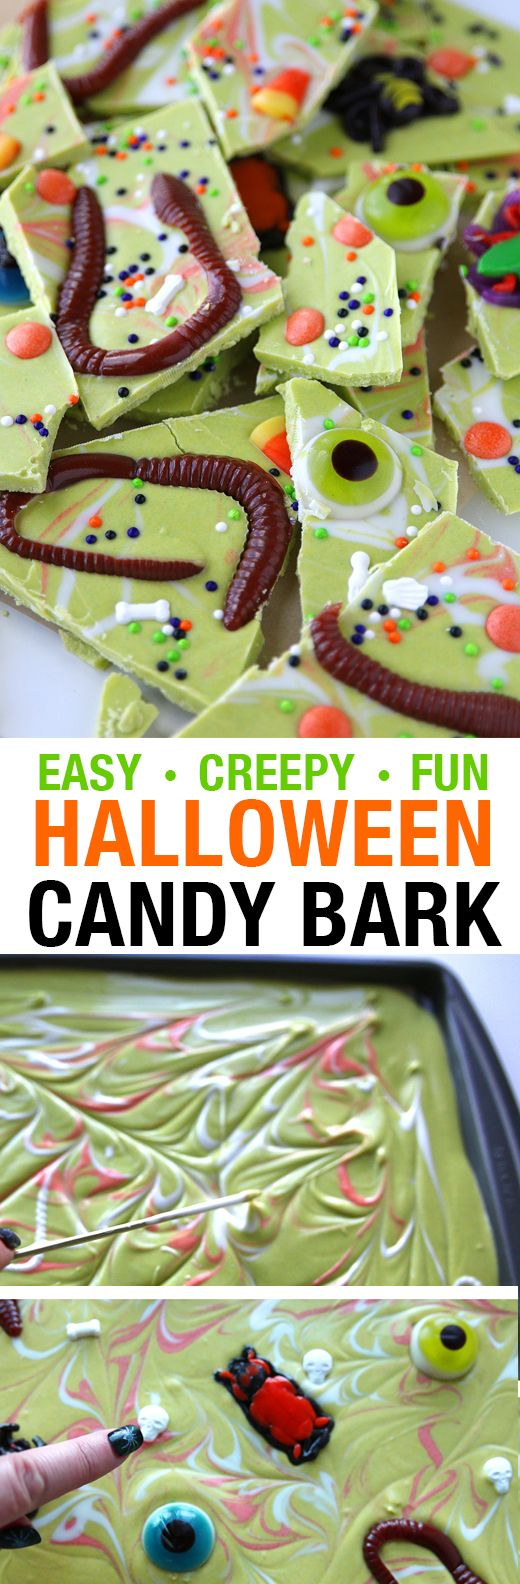 Best 25+ Halloween candy ideas on Pinterest | Easy halloween ...